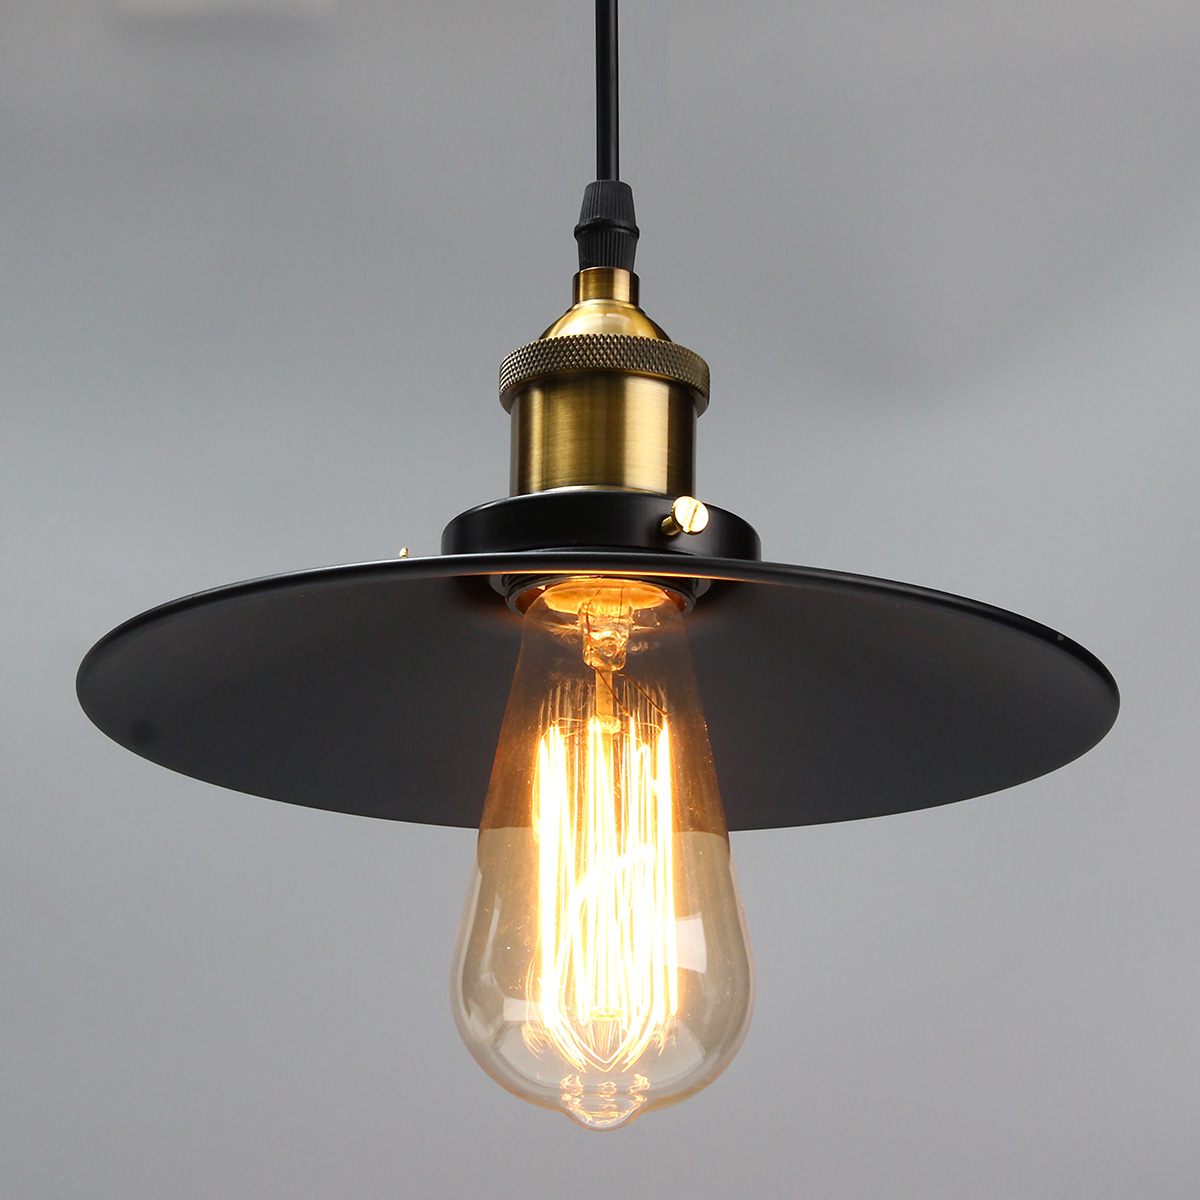 E27 Industrial Retro Vintage Iron Ceiling Lamp outdoor balcony Nordic creative vintage bedroom Pendant Light Chandelier Fixture